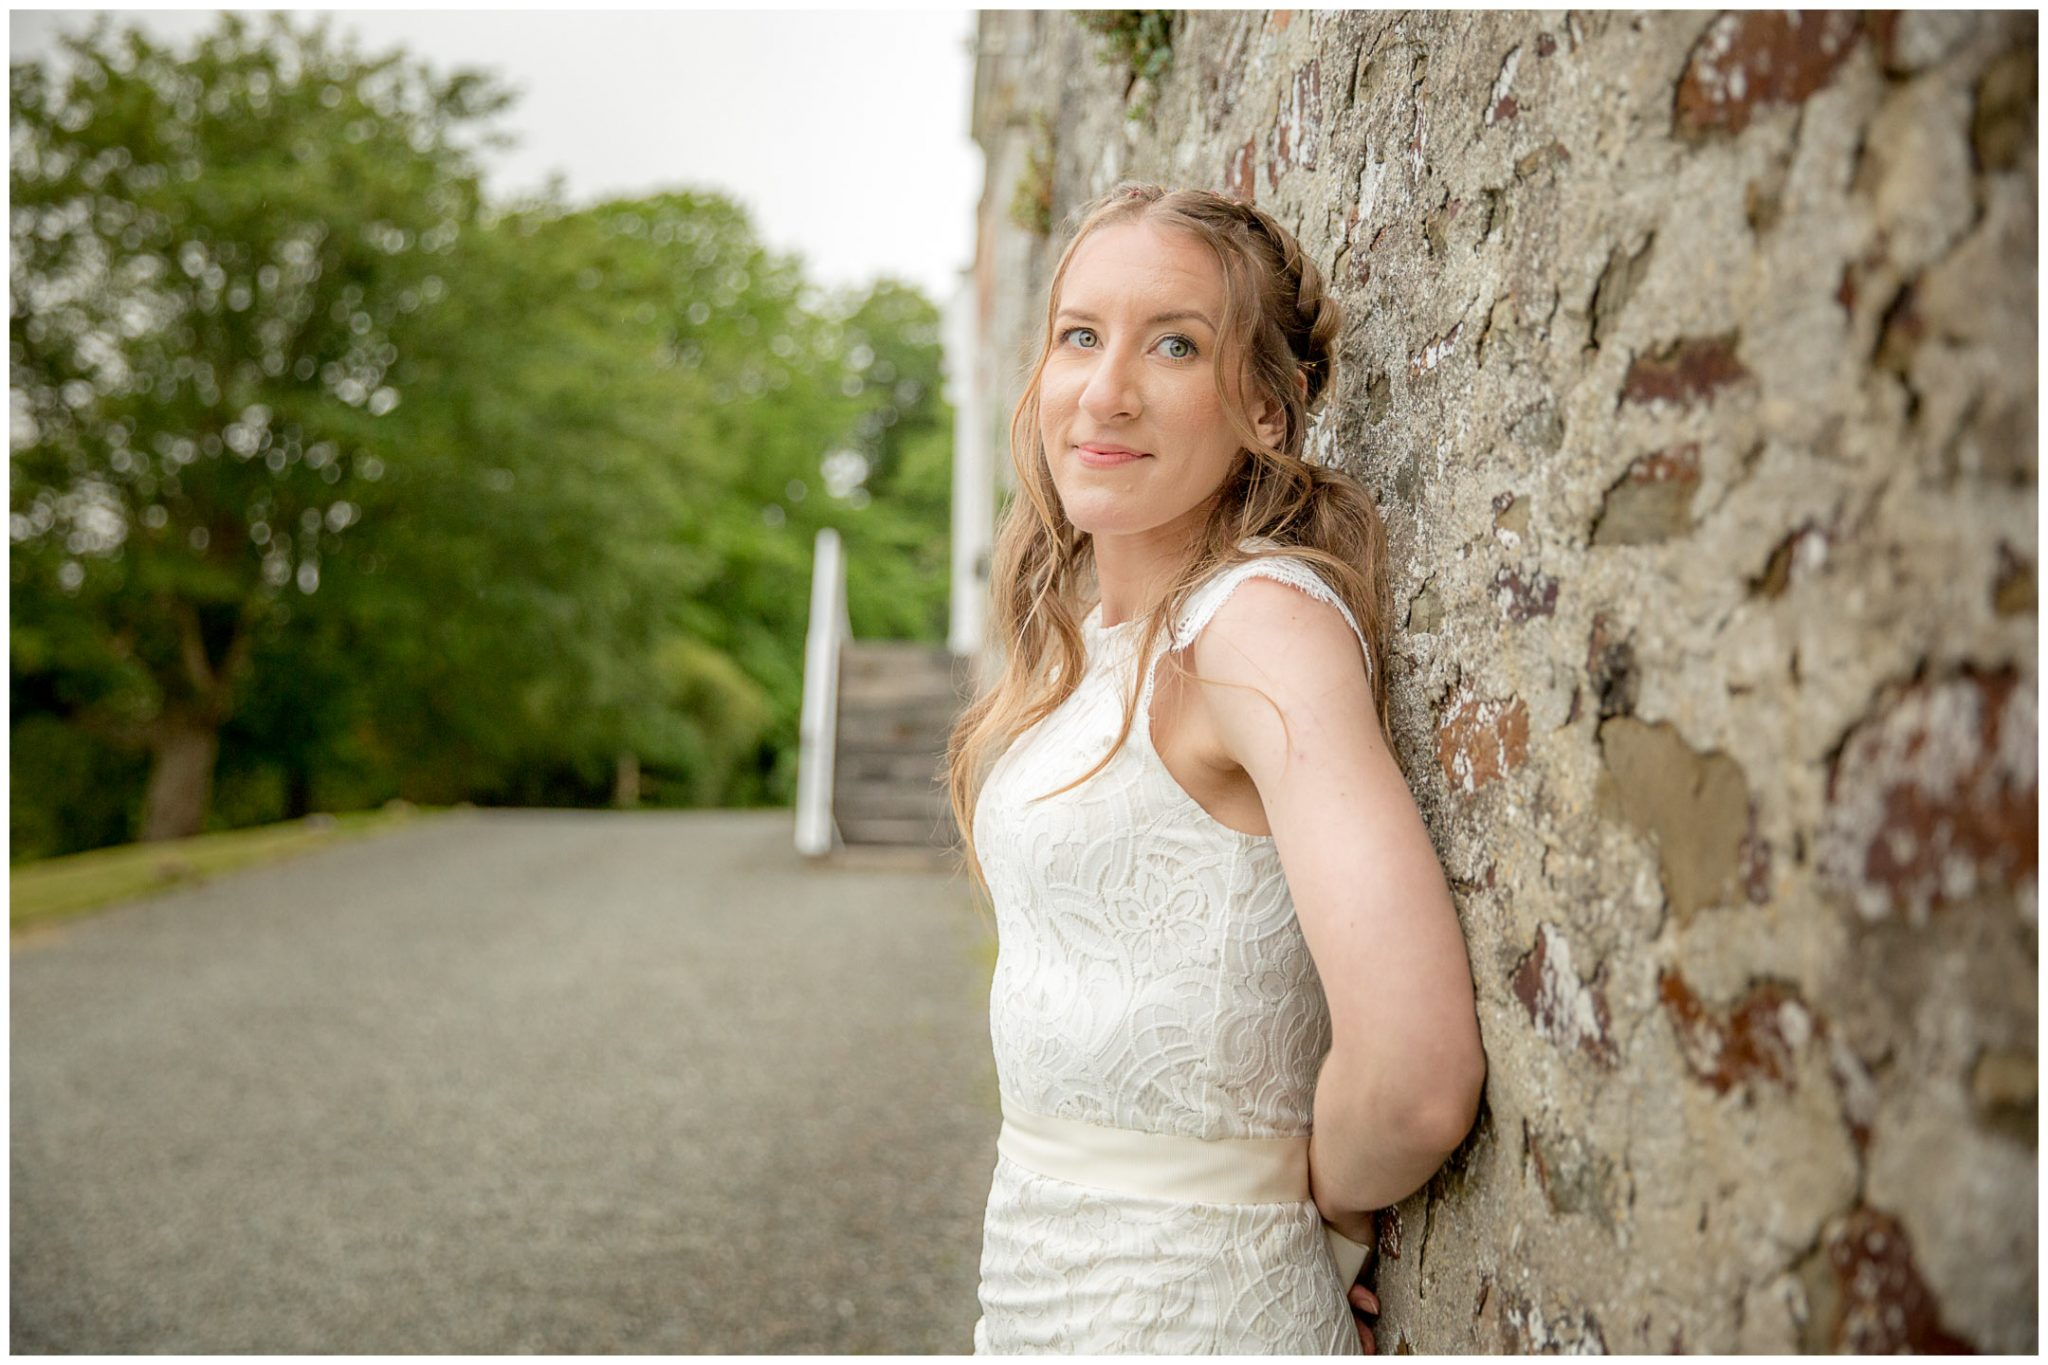 Bride portrait leaning against stone wall